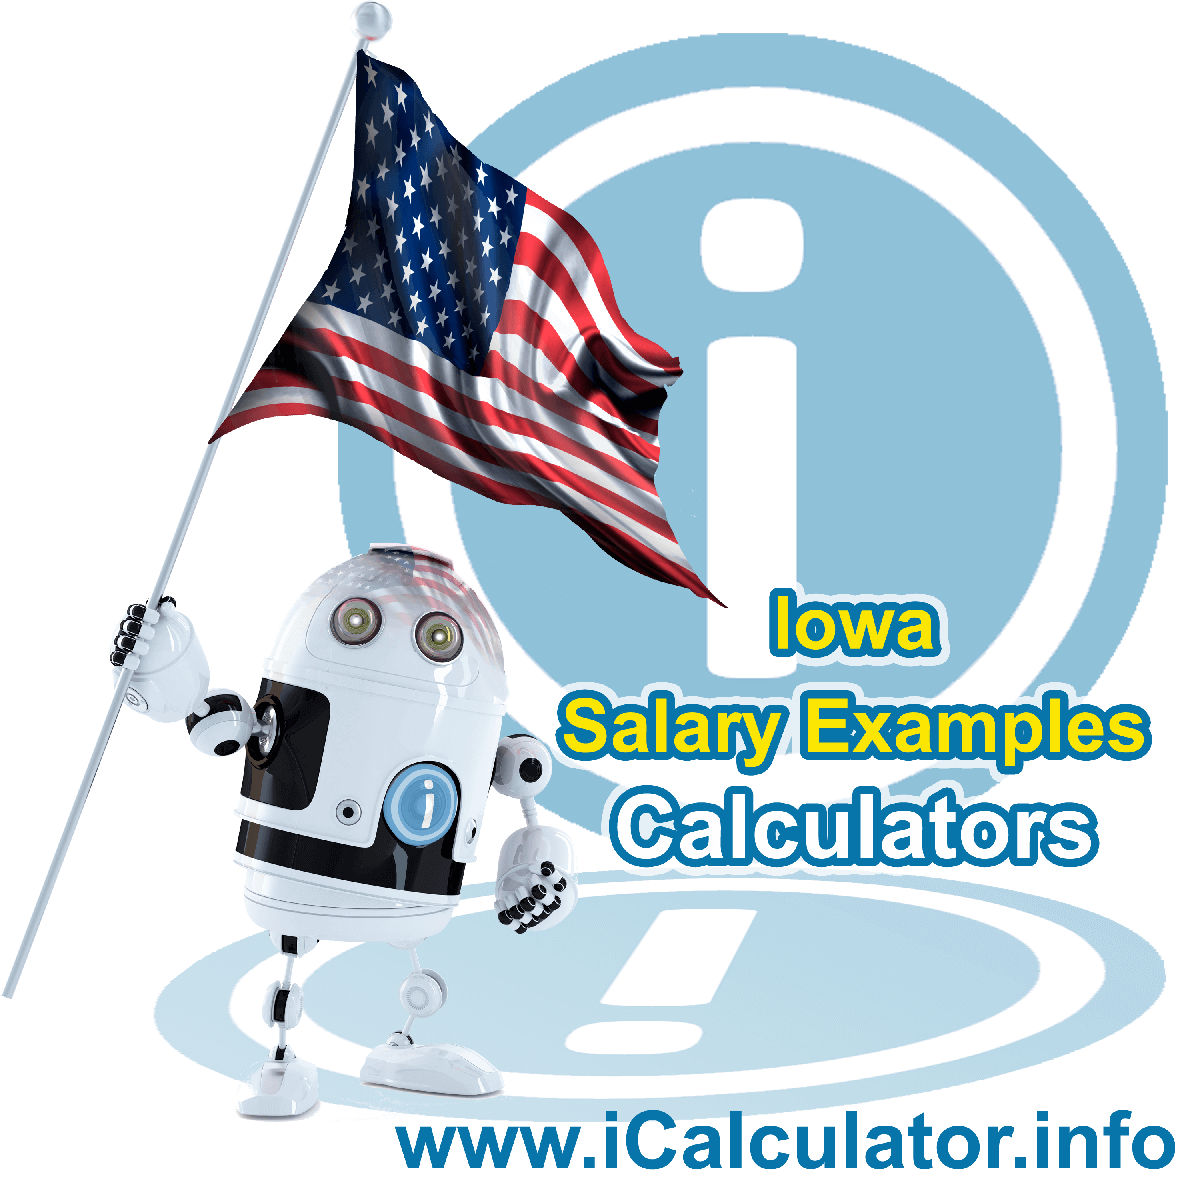 Iowa Salary Example for $230.00 in 2020 | iCalculator | $230.00 salary example for employee and employer paying Iowa State tincome taxes. Detailed salary after tax calculation including Iowa State Tax, Federal State Tax, Medicare Deductions, Social Security, Capital Gains and other income tax and salary deductions complete with supporting Iowa state tax tables